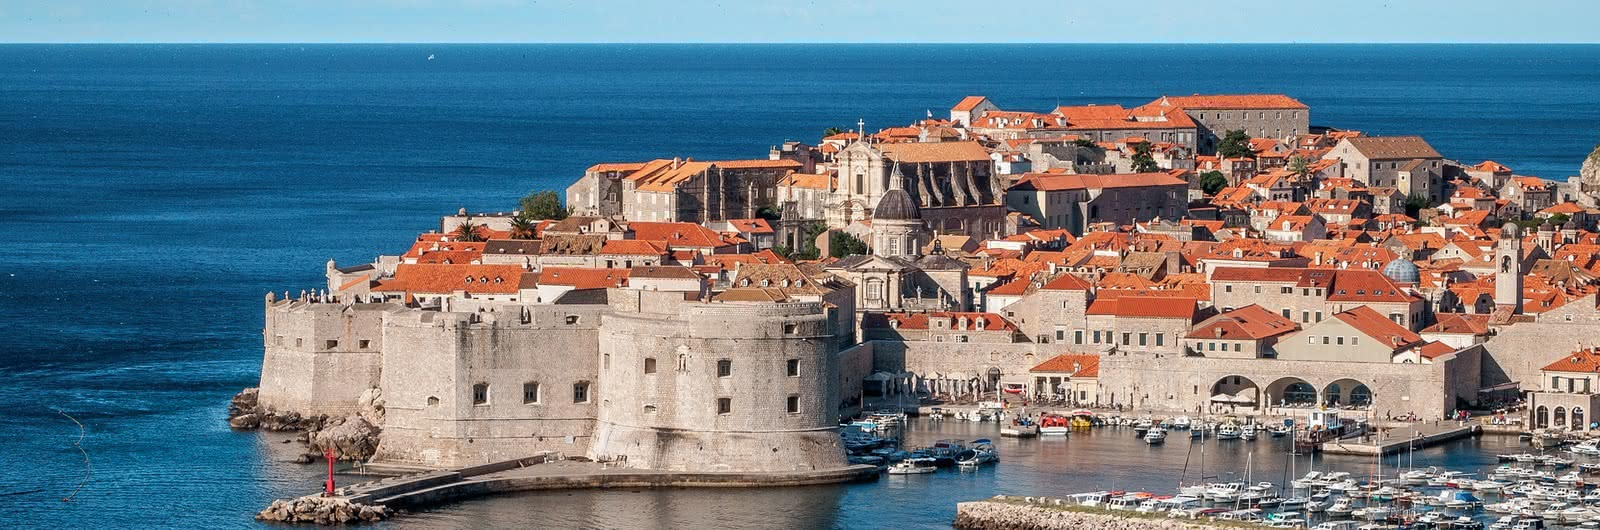 dubrovnik city header